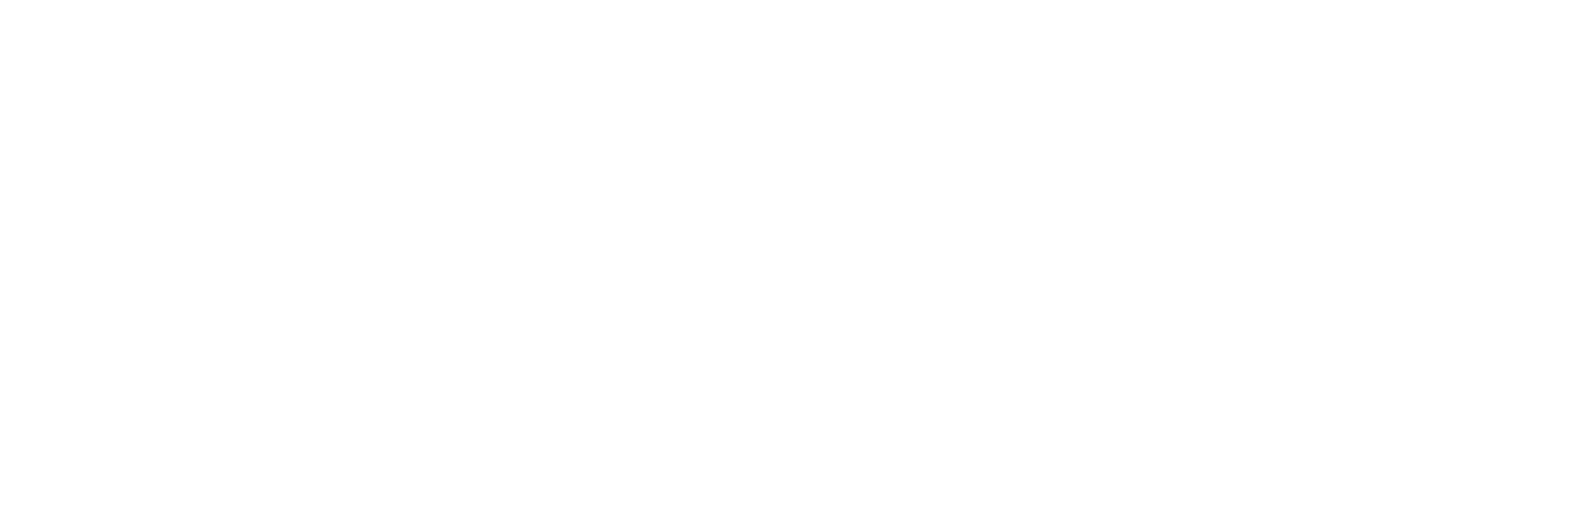 ToolDivider_White.png